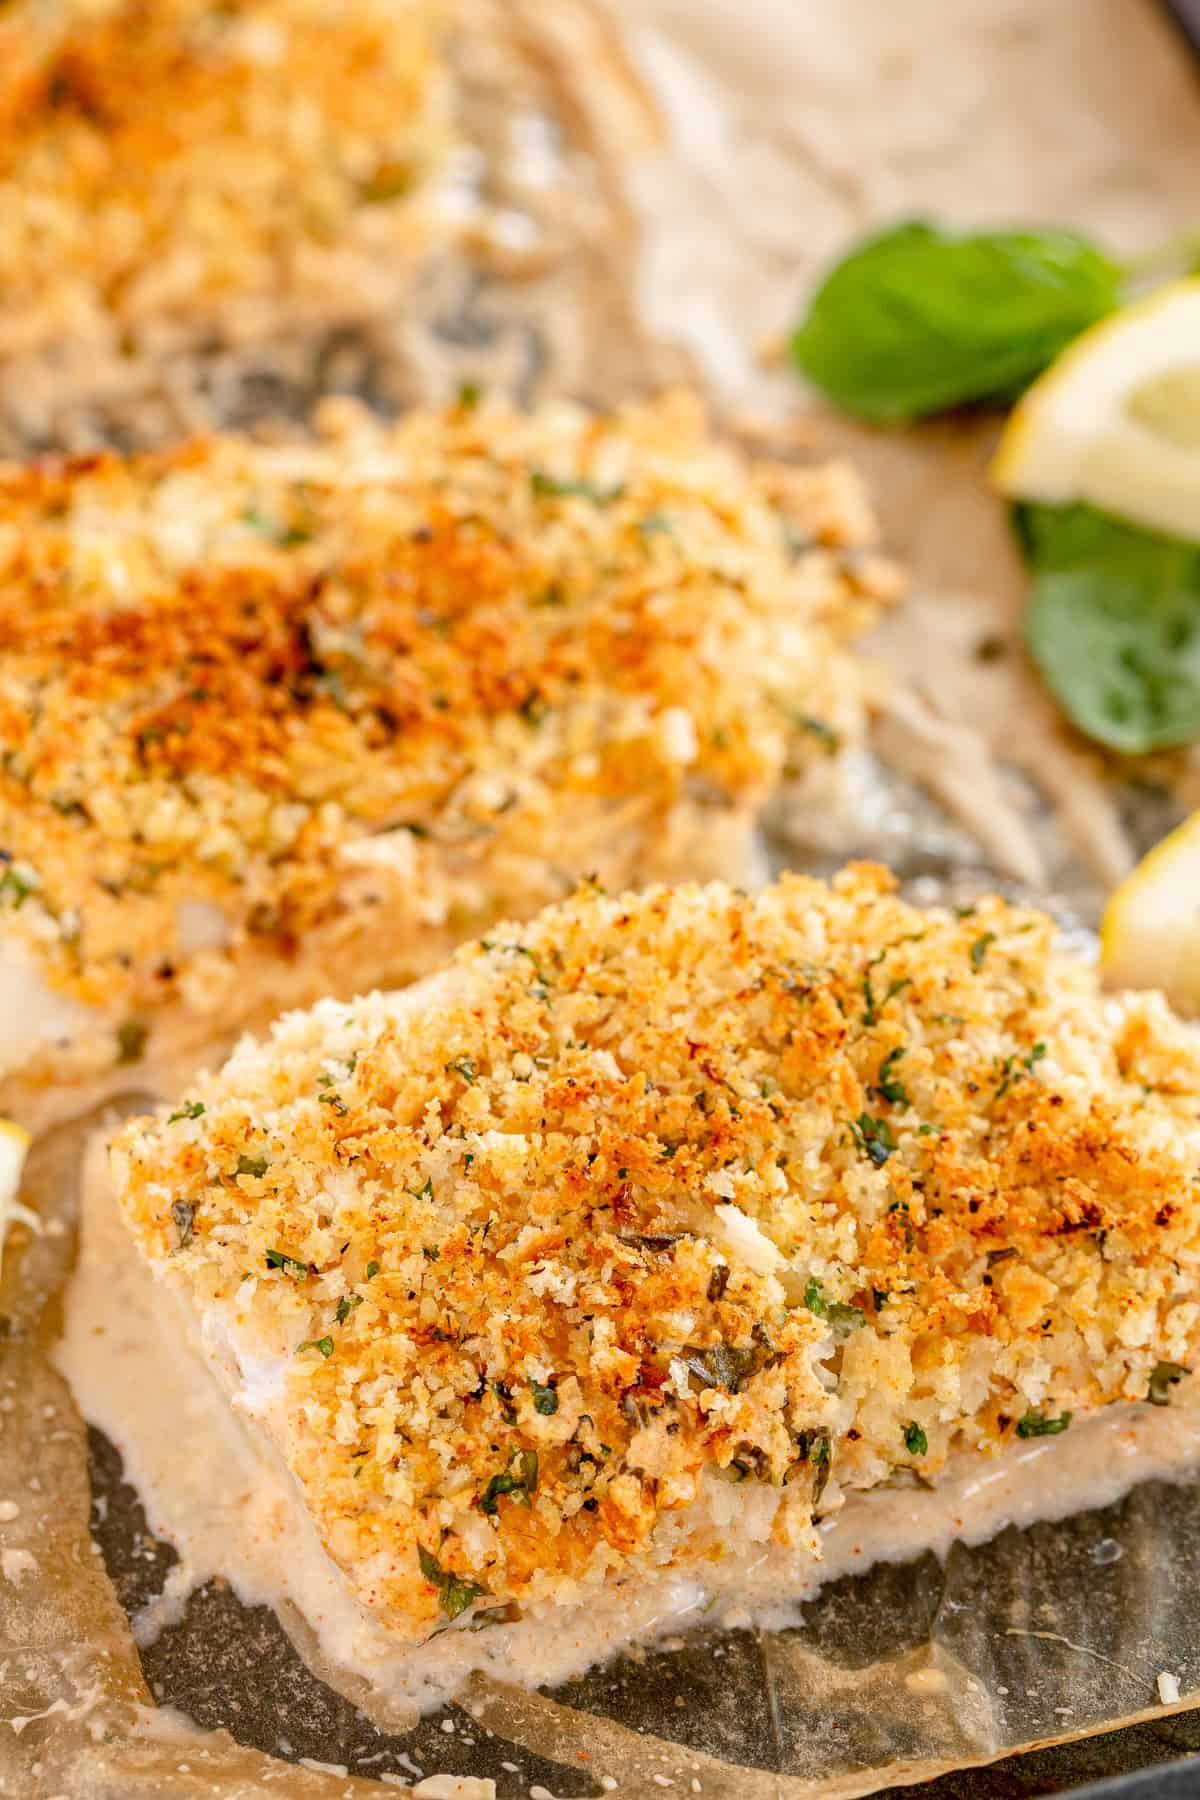 Breaded cod fillets on a parchment paper lined baking sheet.